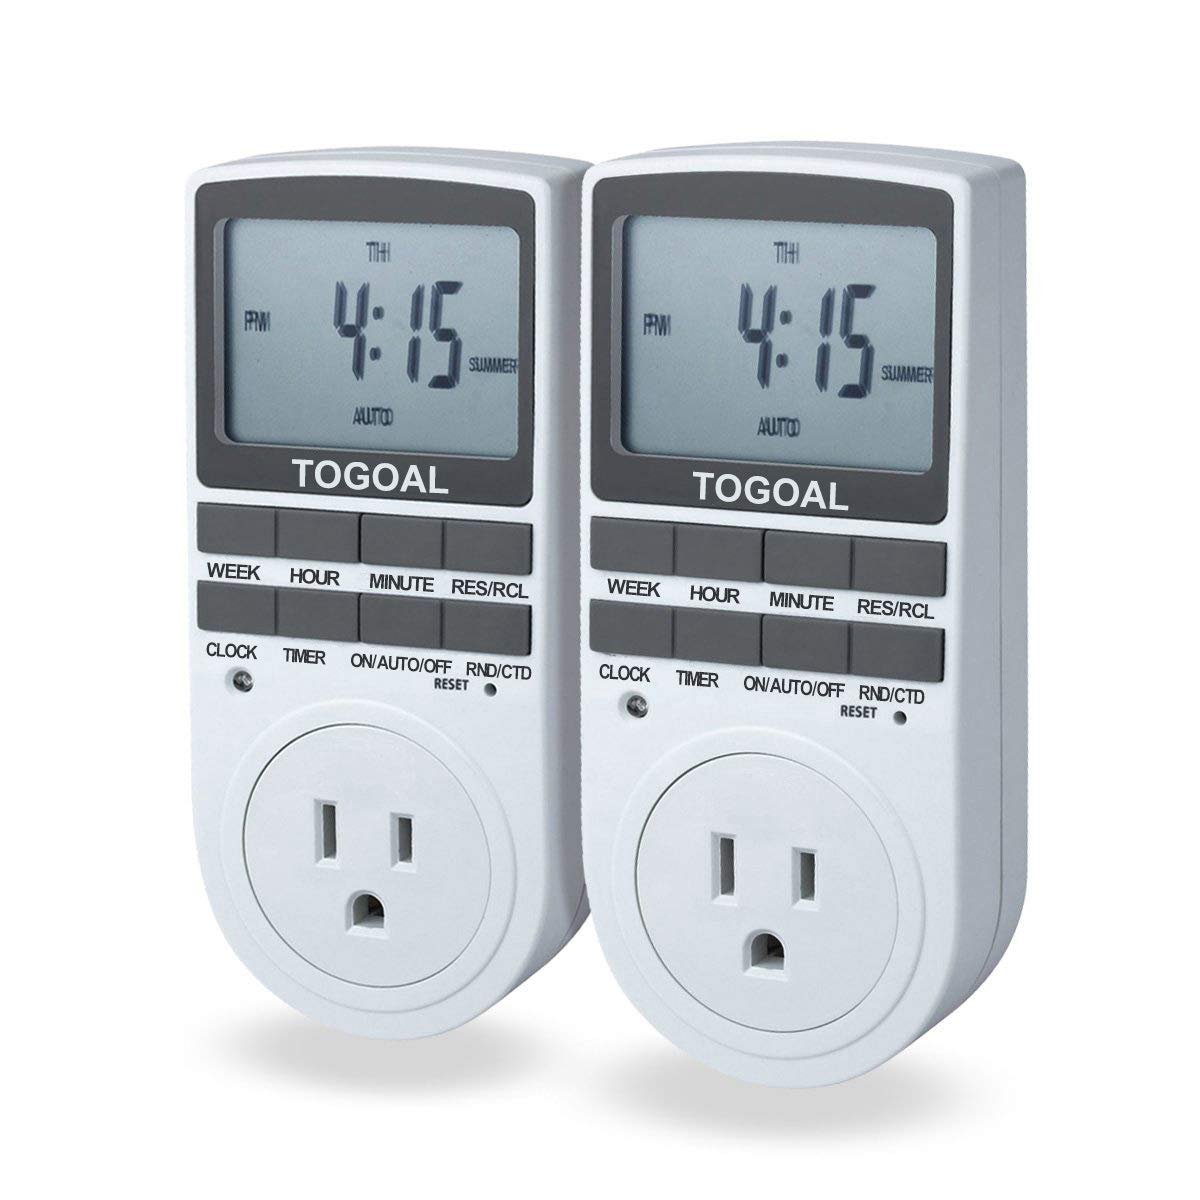 TOGOAL TE02 Digital Light Timer Plug with 3-prong Outlet, 24/7 Programmable for Indoor Electrical Switch with Anti-theft Random and Countdown Option, 2 Packs (15A, 1800W) by TOGOAL